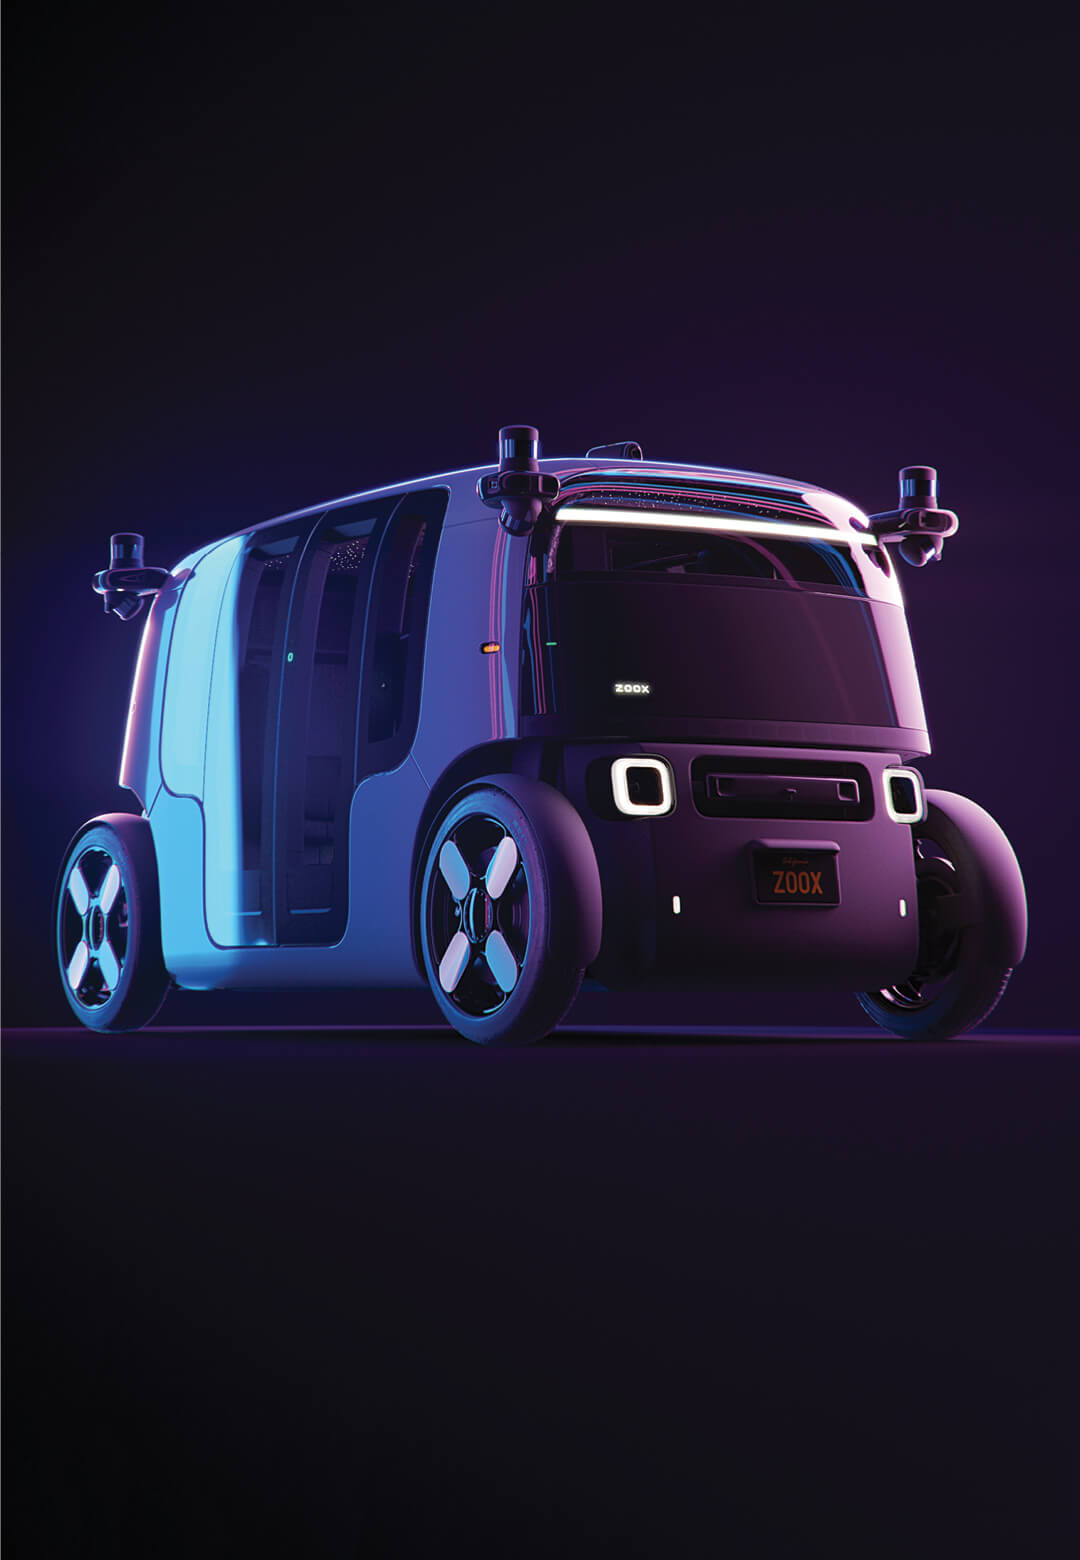 Zoox is an autonomous and fully electric vehicle for the future of urban mobility | Zoox Autonomous Robotaxi | Zoox/ Amazon | STIRworld